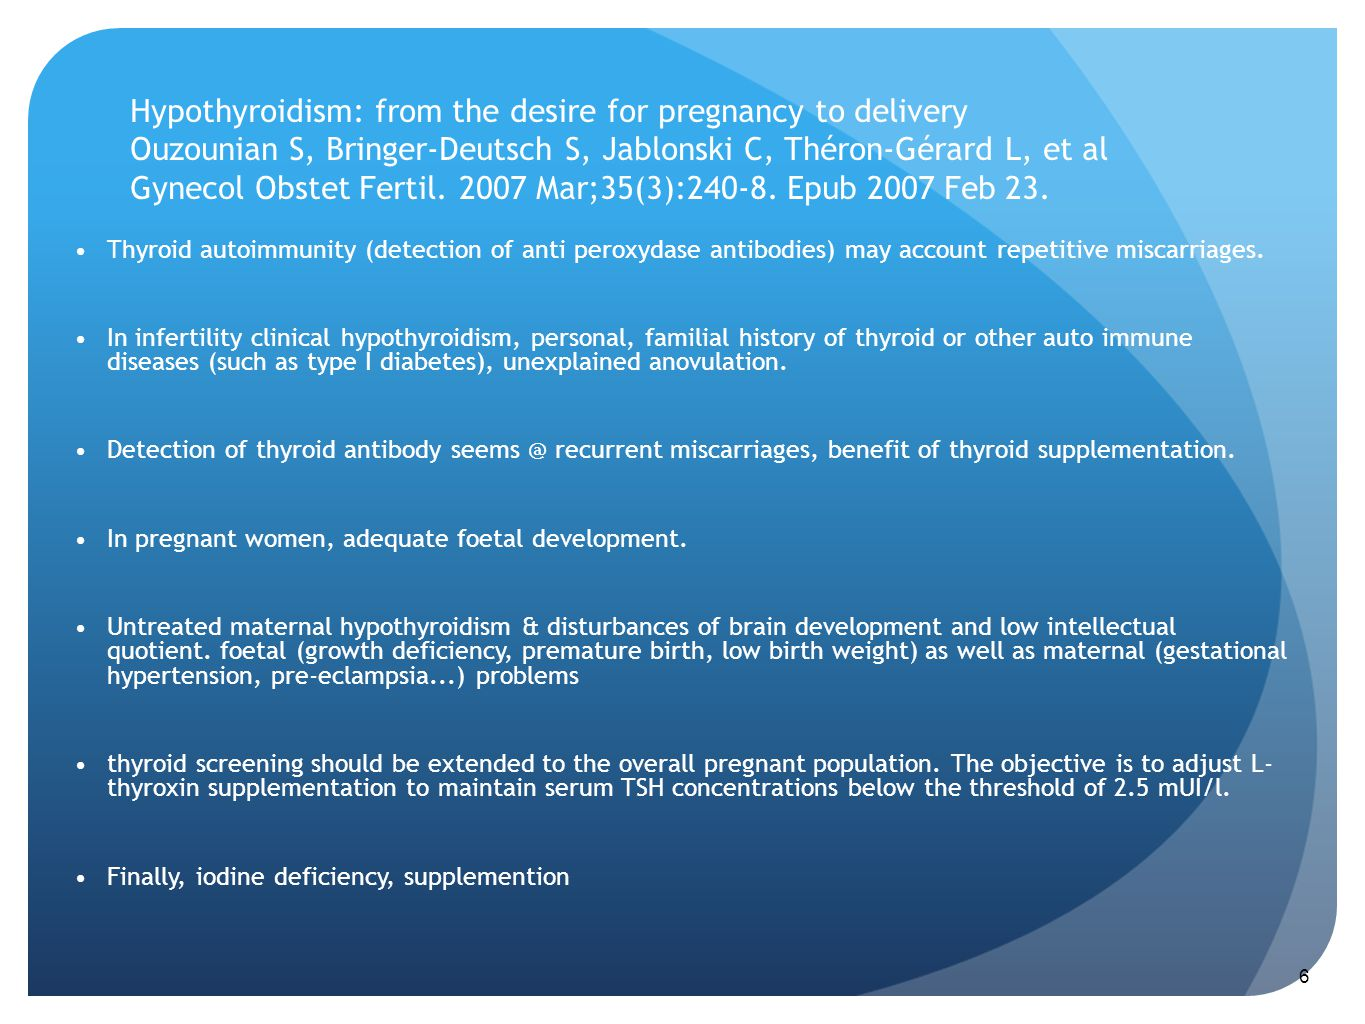 Hypothyroidism: from the desire for pregnancy to delivery Ouzounian S, Bringer-Deutsch S, Jablonski C, Théron-Gérard L, et al Gynecol Obstet Fertil. 2007 Mar;35(3):240-8. Epub 2007 Feb 23.